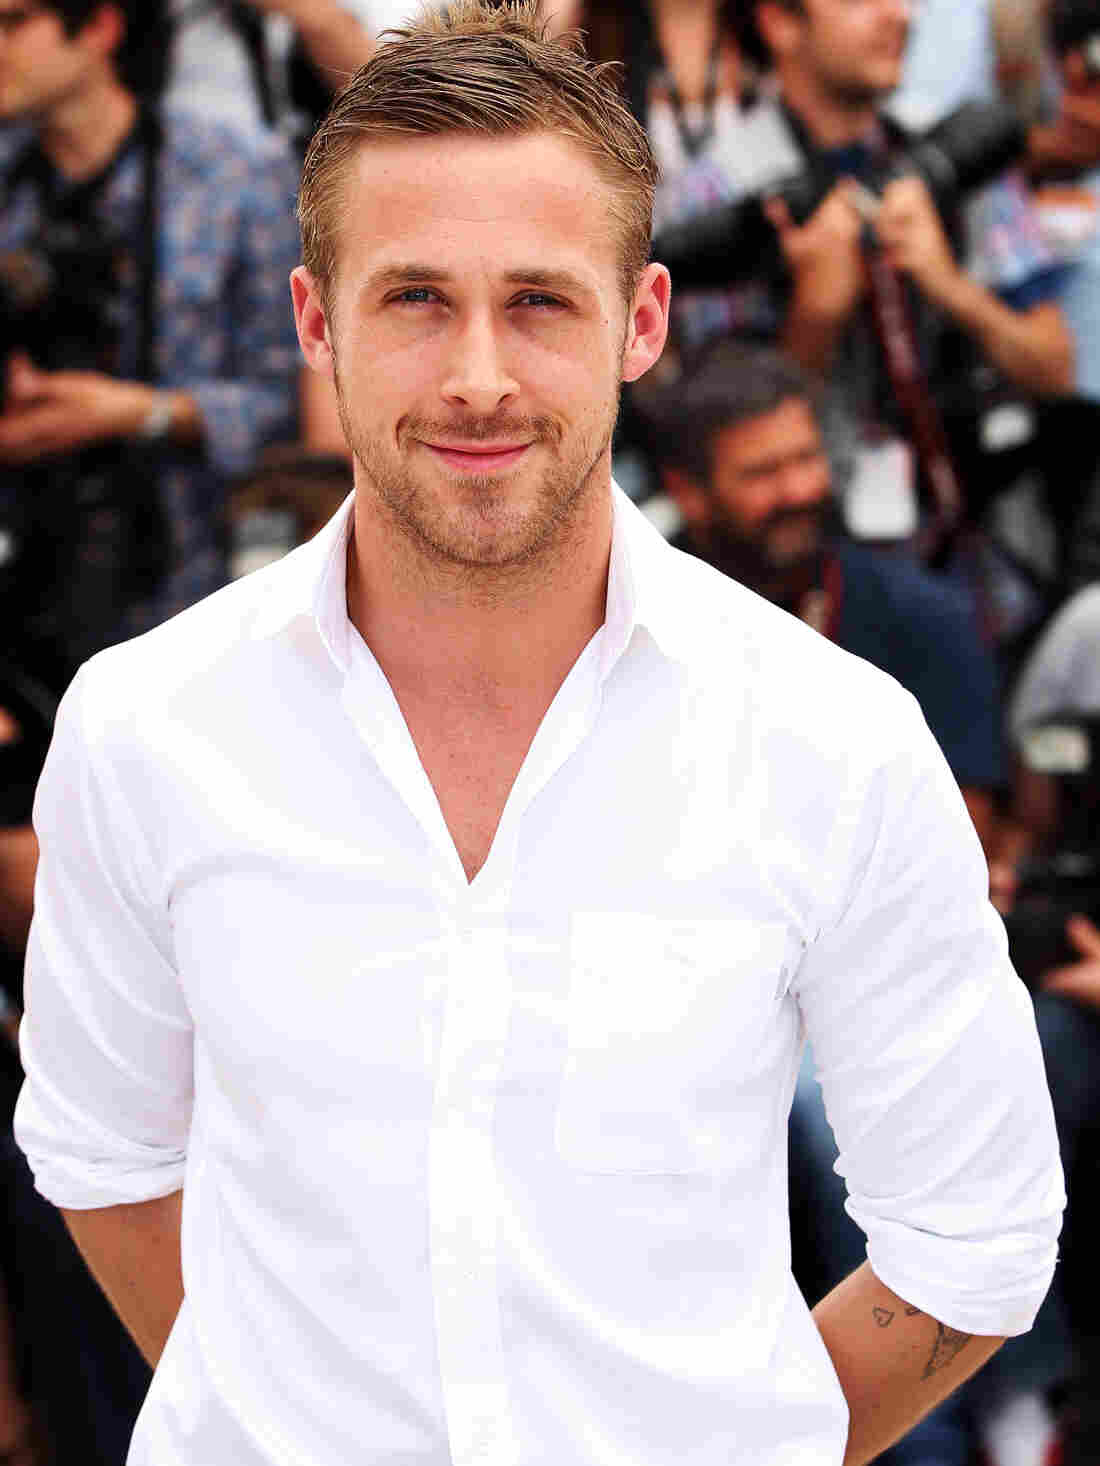 BuzzFeed editors love actor Ryan Gosling.